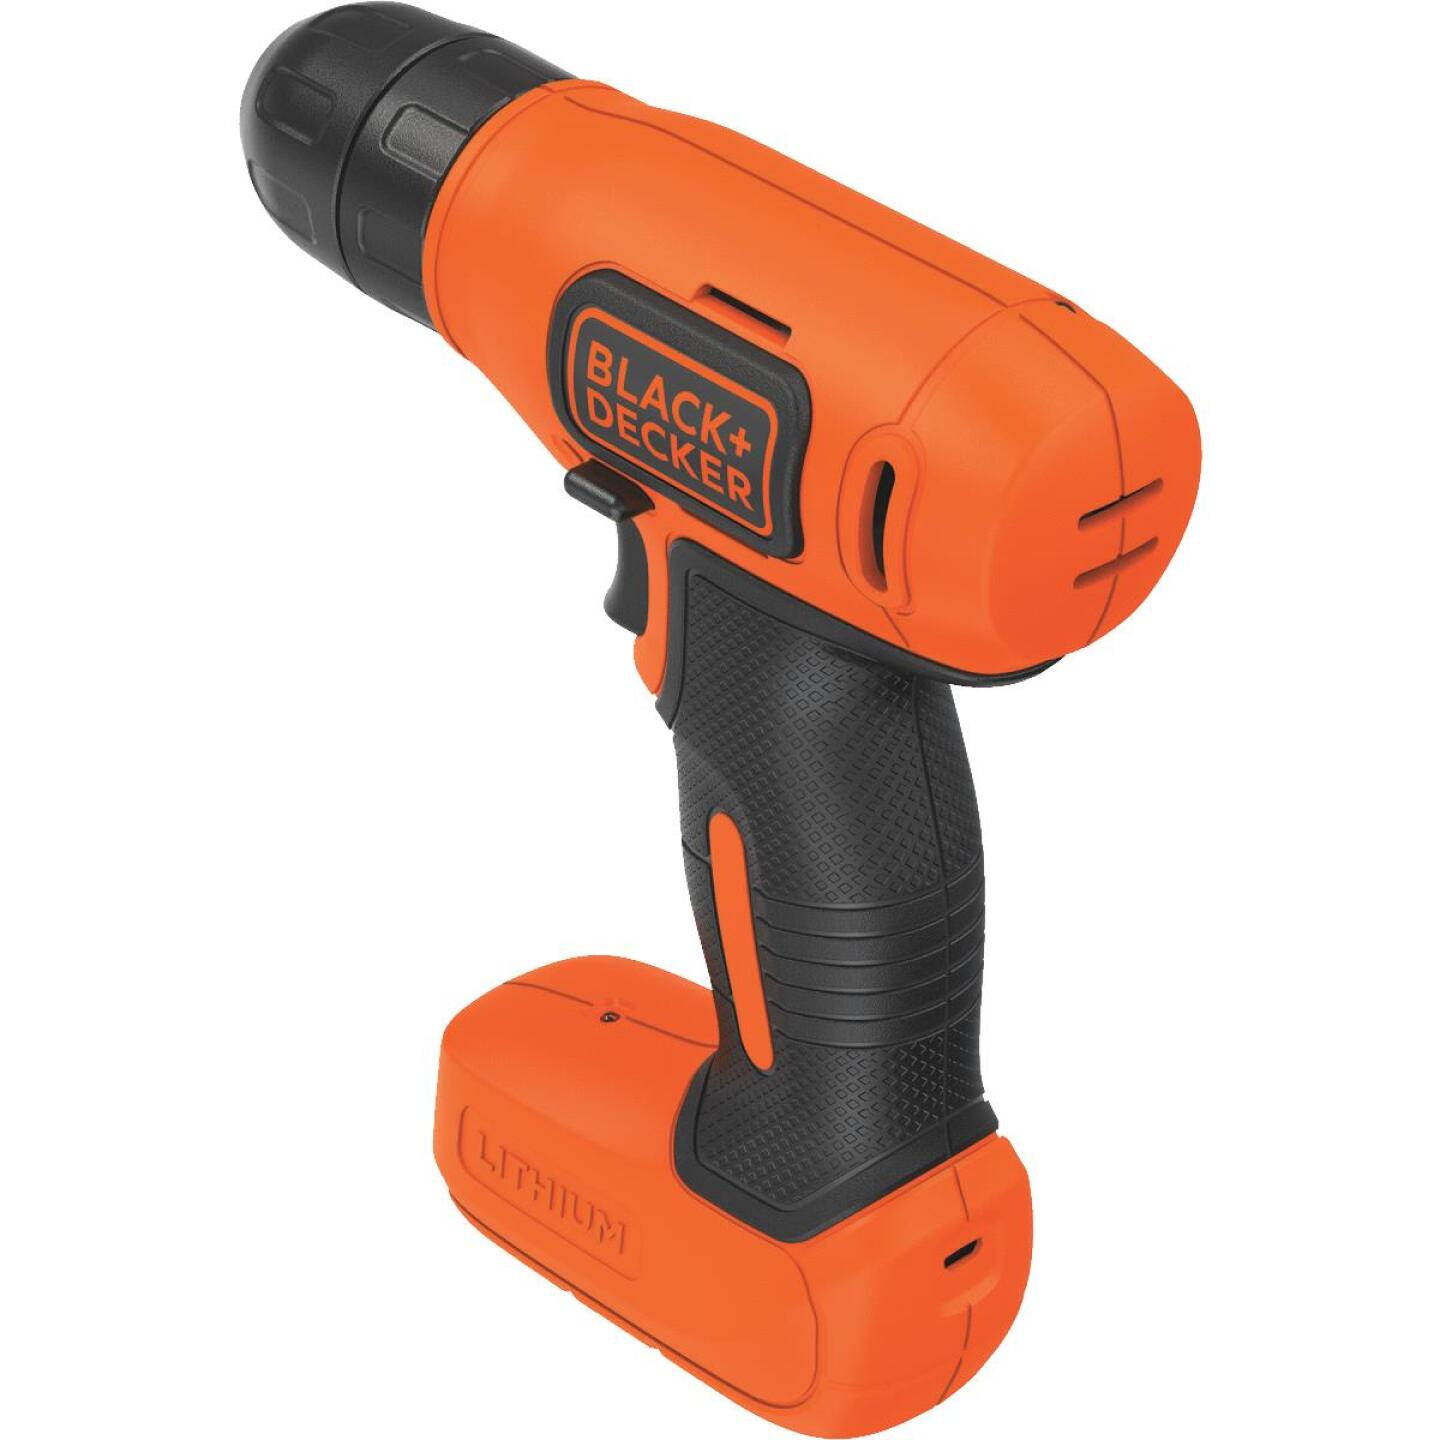 Black & Decker 8 Volt Lithium-Ion 3/8 In. Cordless Drill Kit Image 4